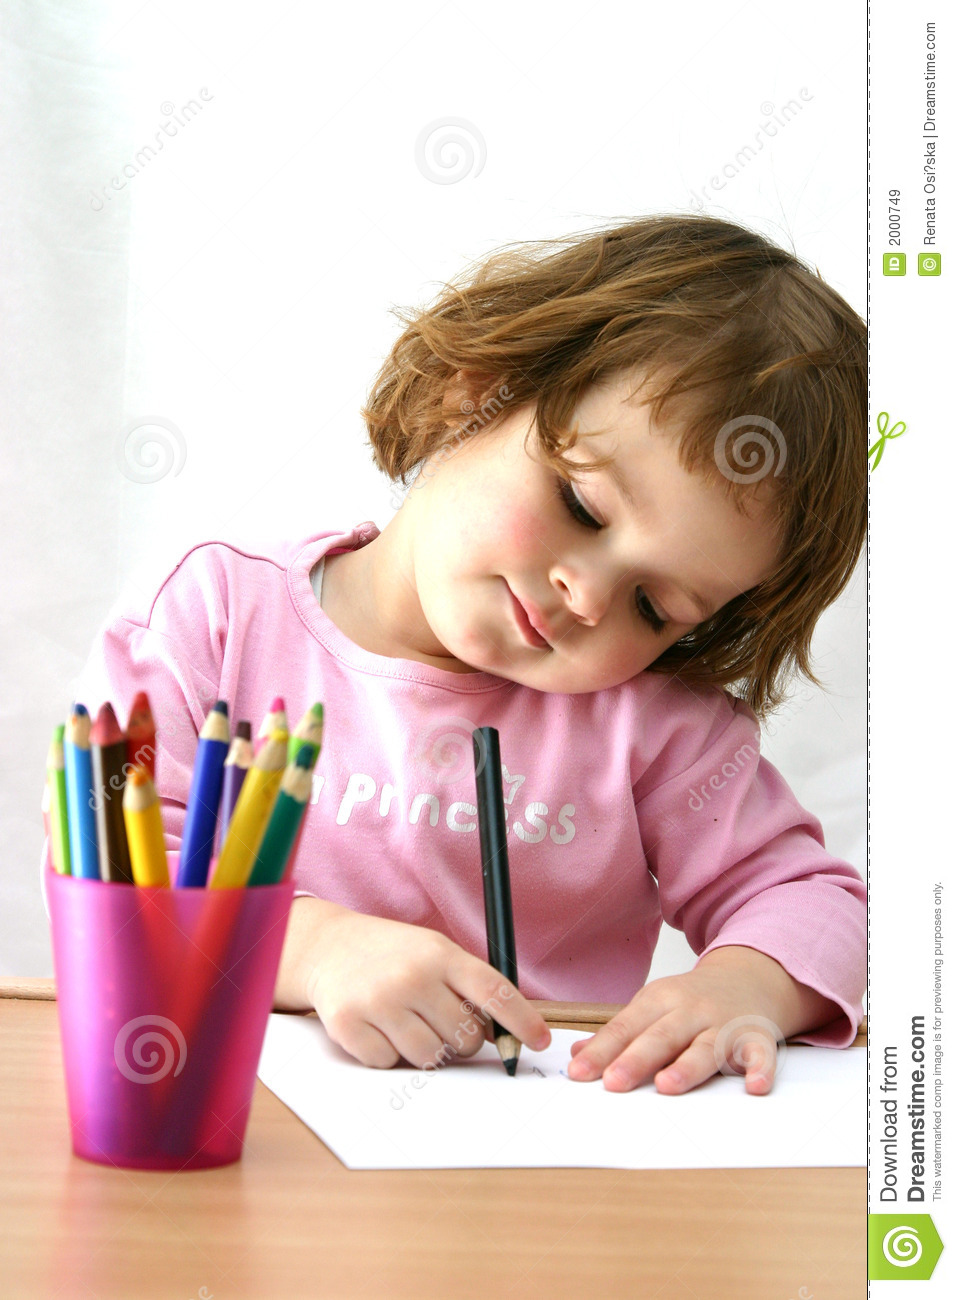 drawing with crayons stock image image of childhood imagination